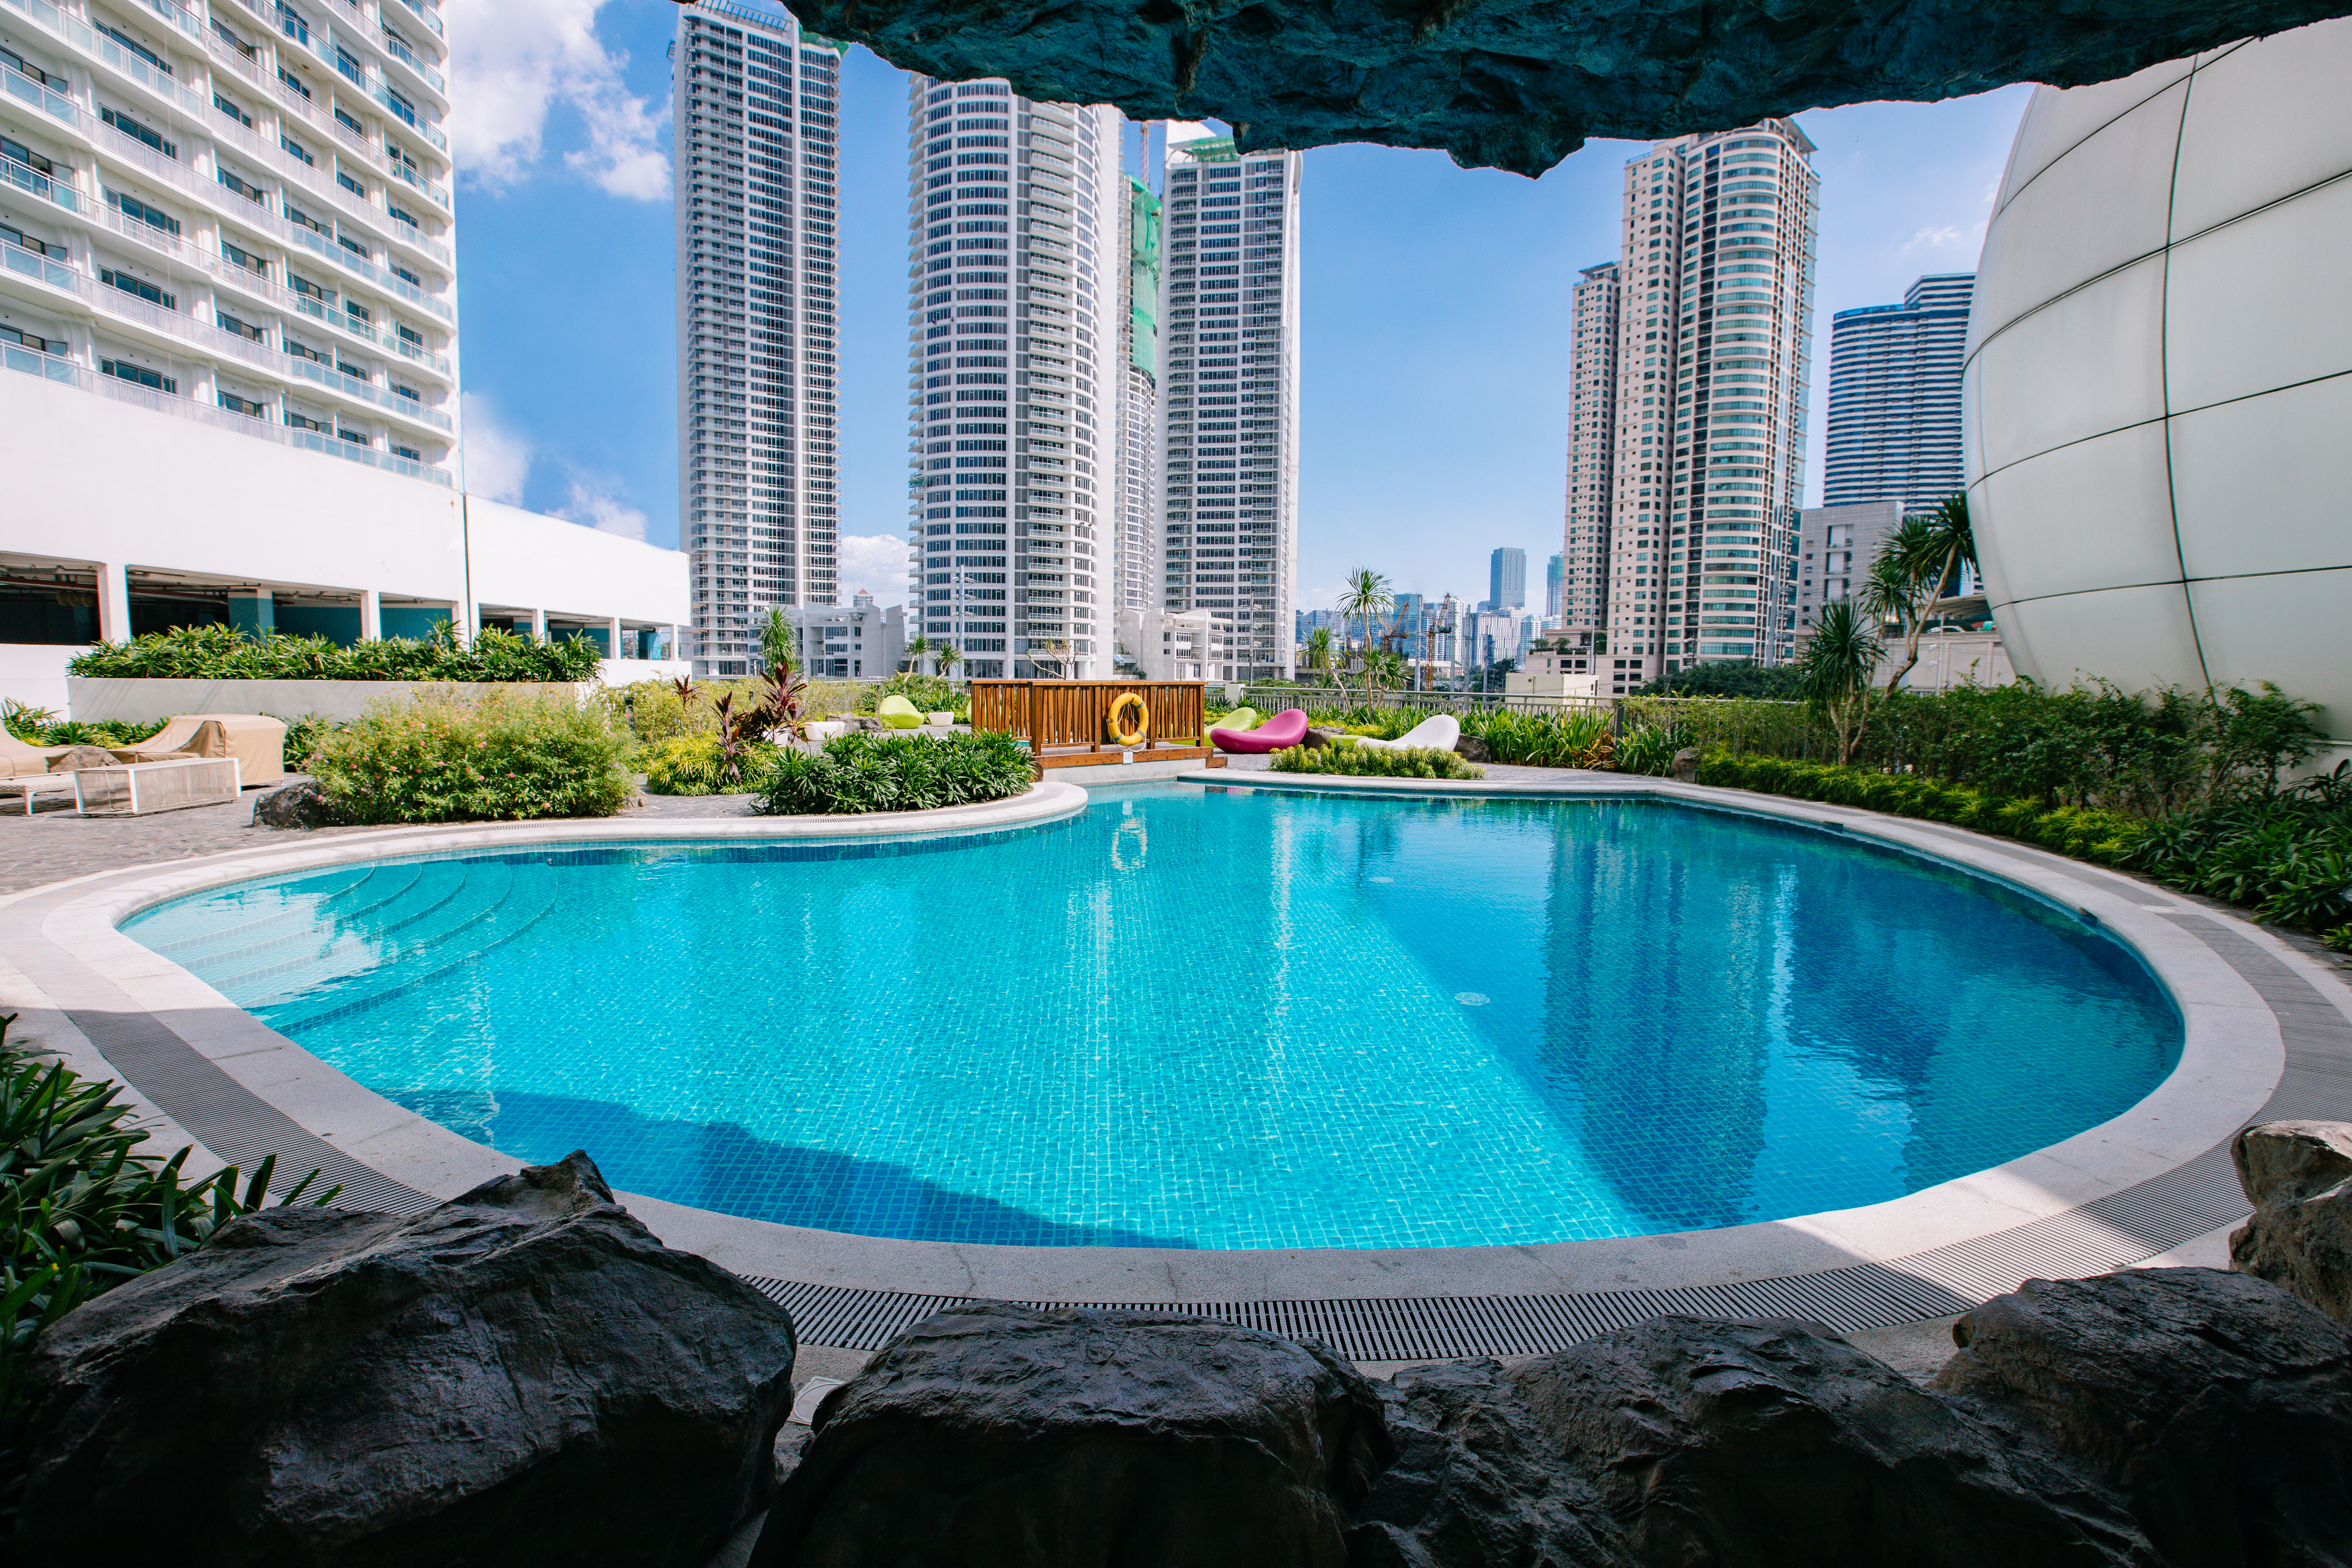 pool area at acqua private residences